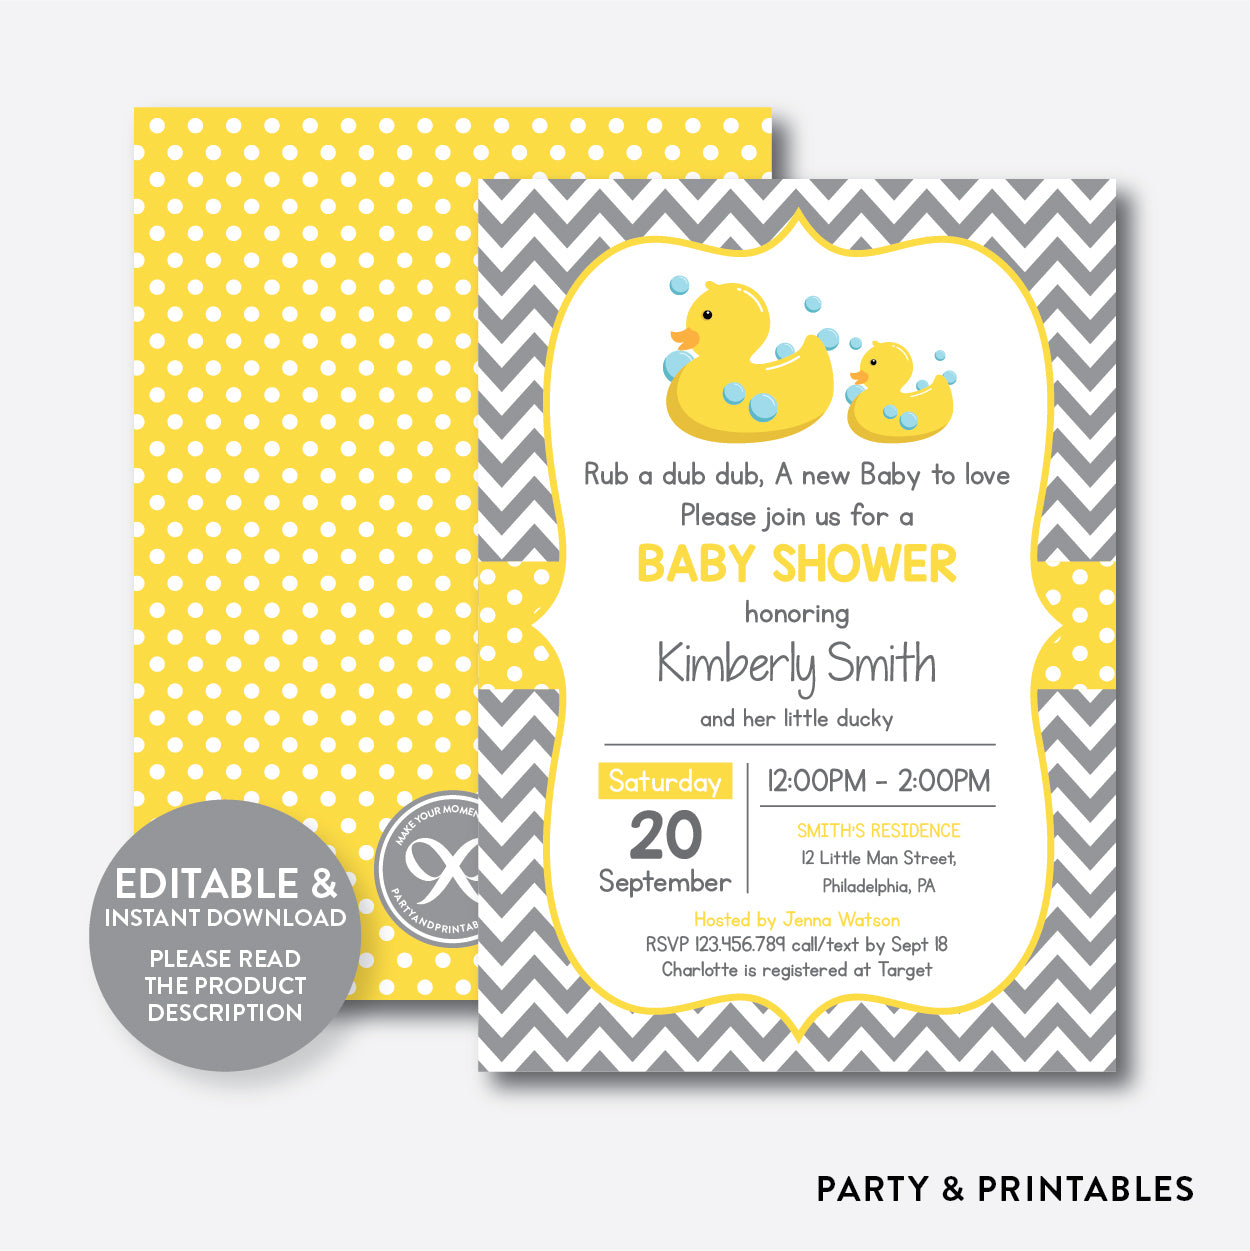 Duck Baby Shower Invitation / Editable / Instant Download (SBS.69), invitation - Party and Printables